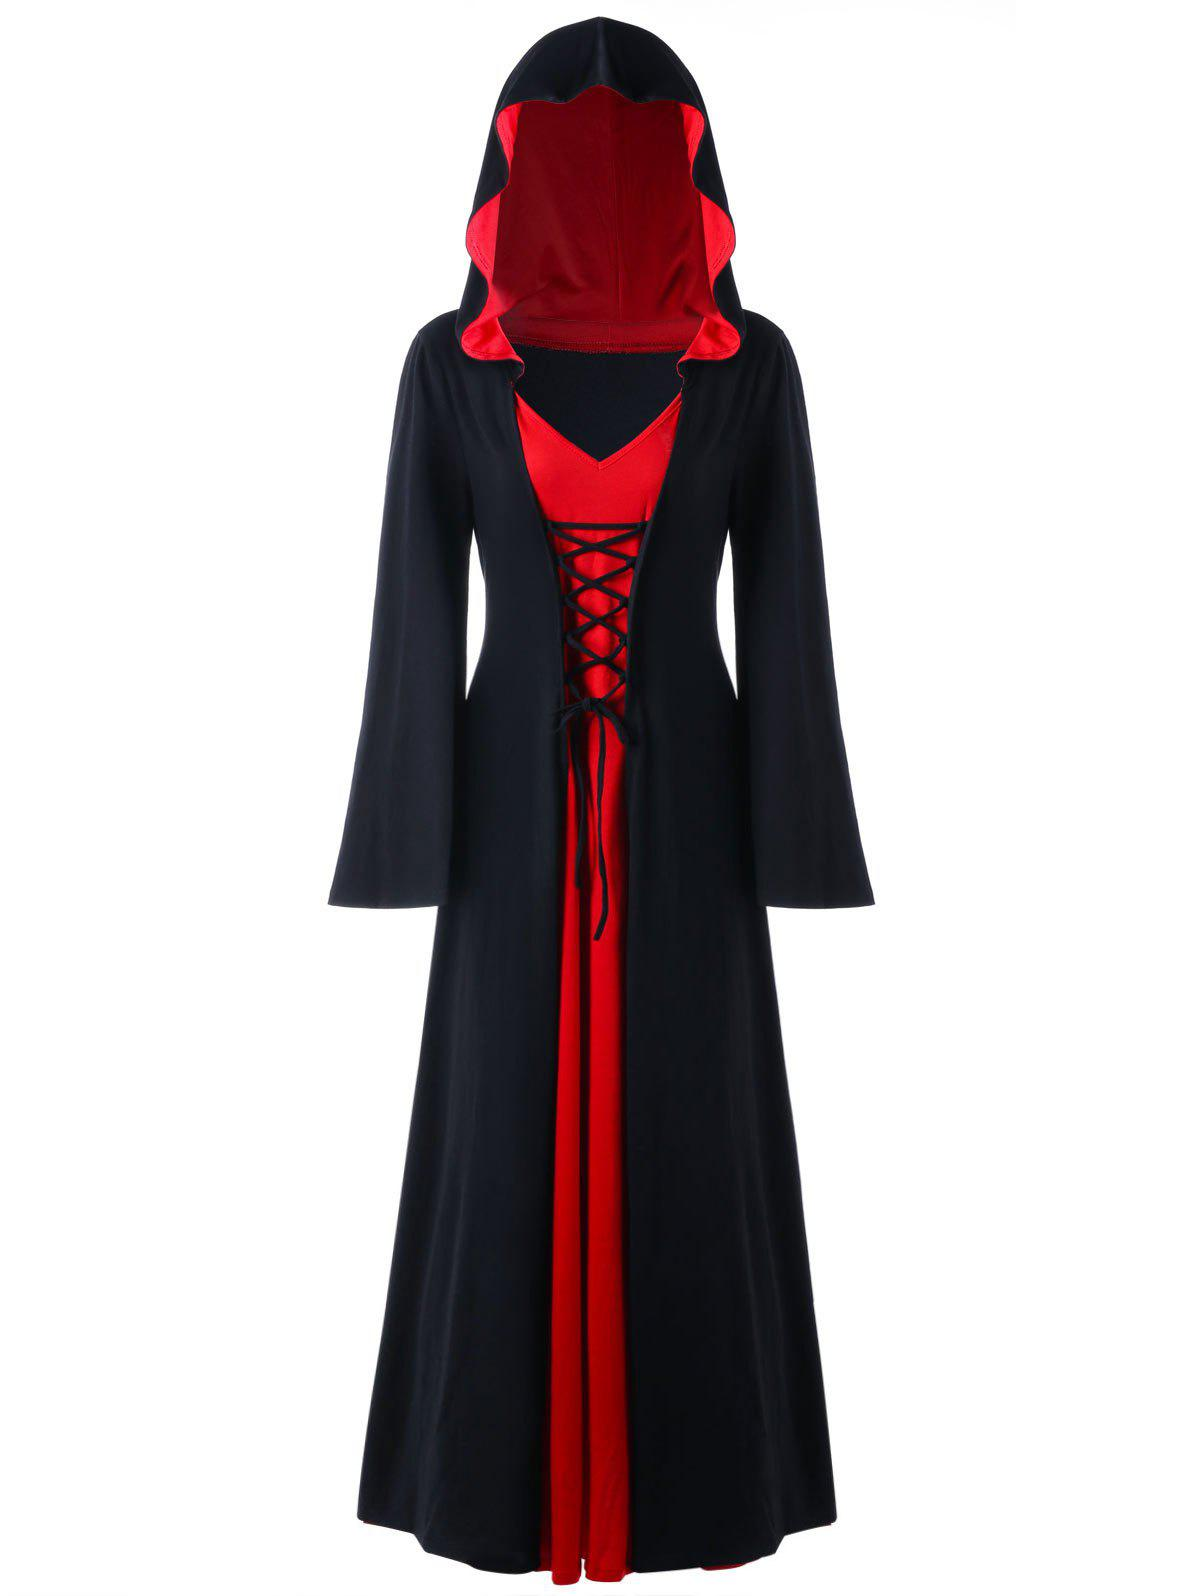 Halloween Plus Size Lace Up Hooded Maxi DressWOMEN<br><br>Size: 2XL; Color: RED WITH BLACK; Style: Novelty; Material: Polyester,Spandex; Silhouette: A-Line; Dresses Length: Ankle-Length; Neckline: Hooded; Sleeve Length: Long Sleeves; Pattern Type: Solid; With Belt: No; Season: Fall,Spring; Weight: 0.6700kg; Package Contents: 1 x Dress;